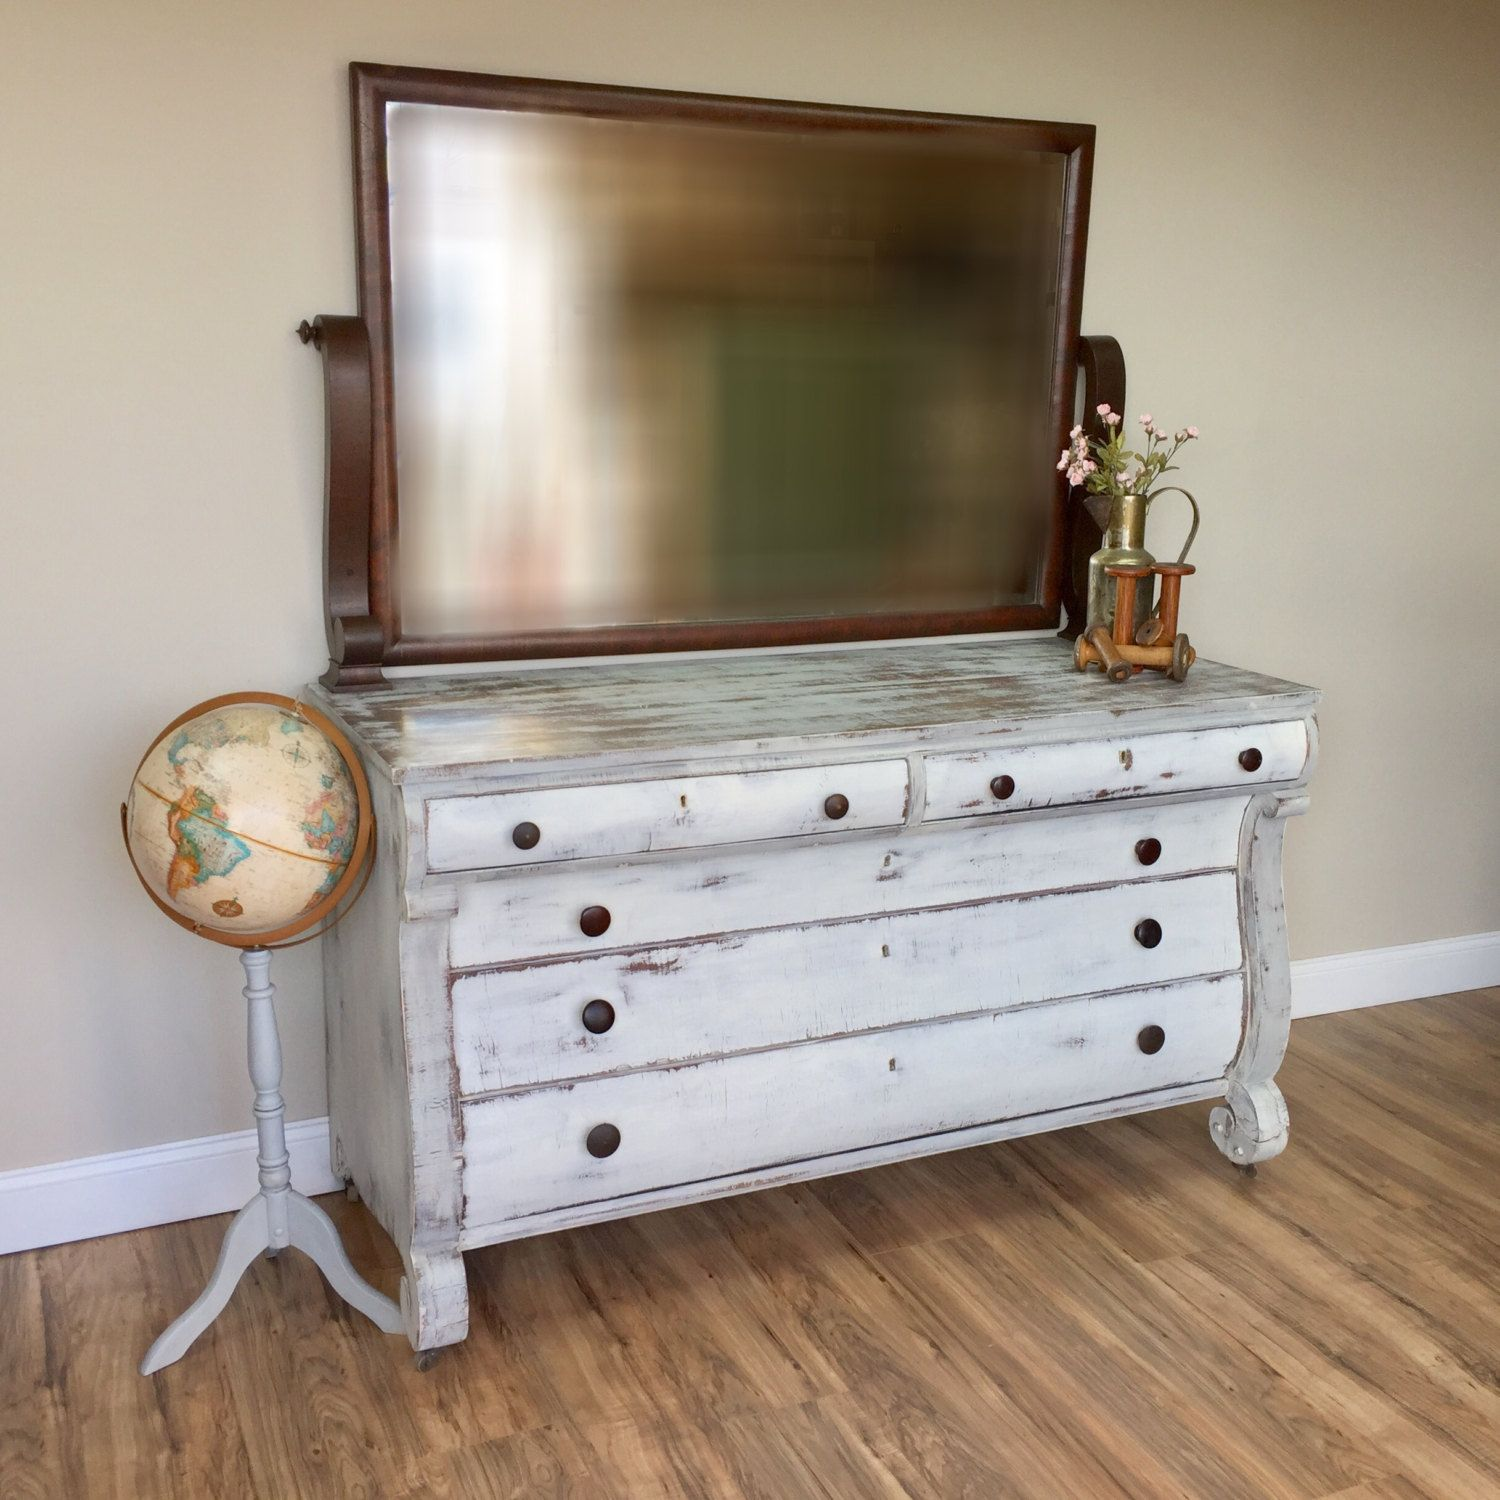 Add A Sense Of History To Your Interior With This Gorgeous American Empire Long Dresser